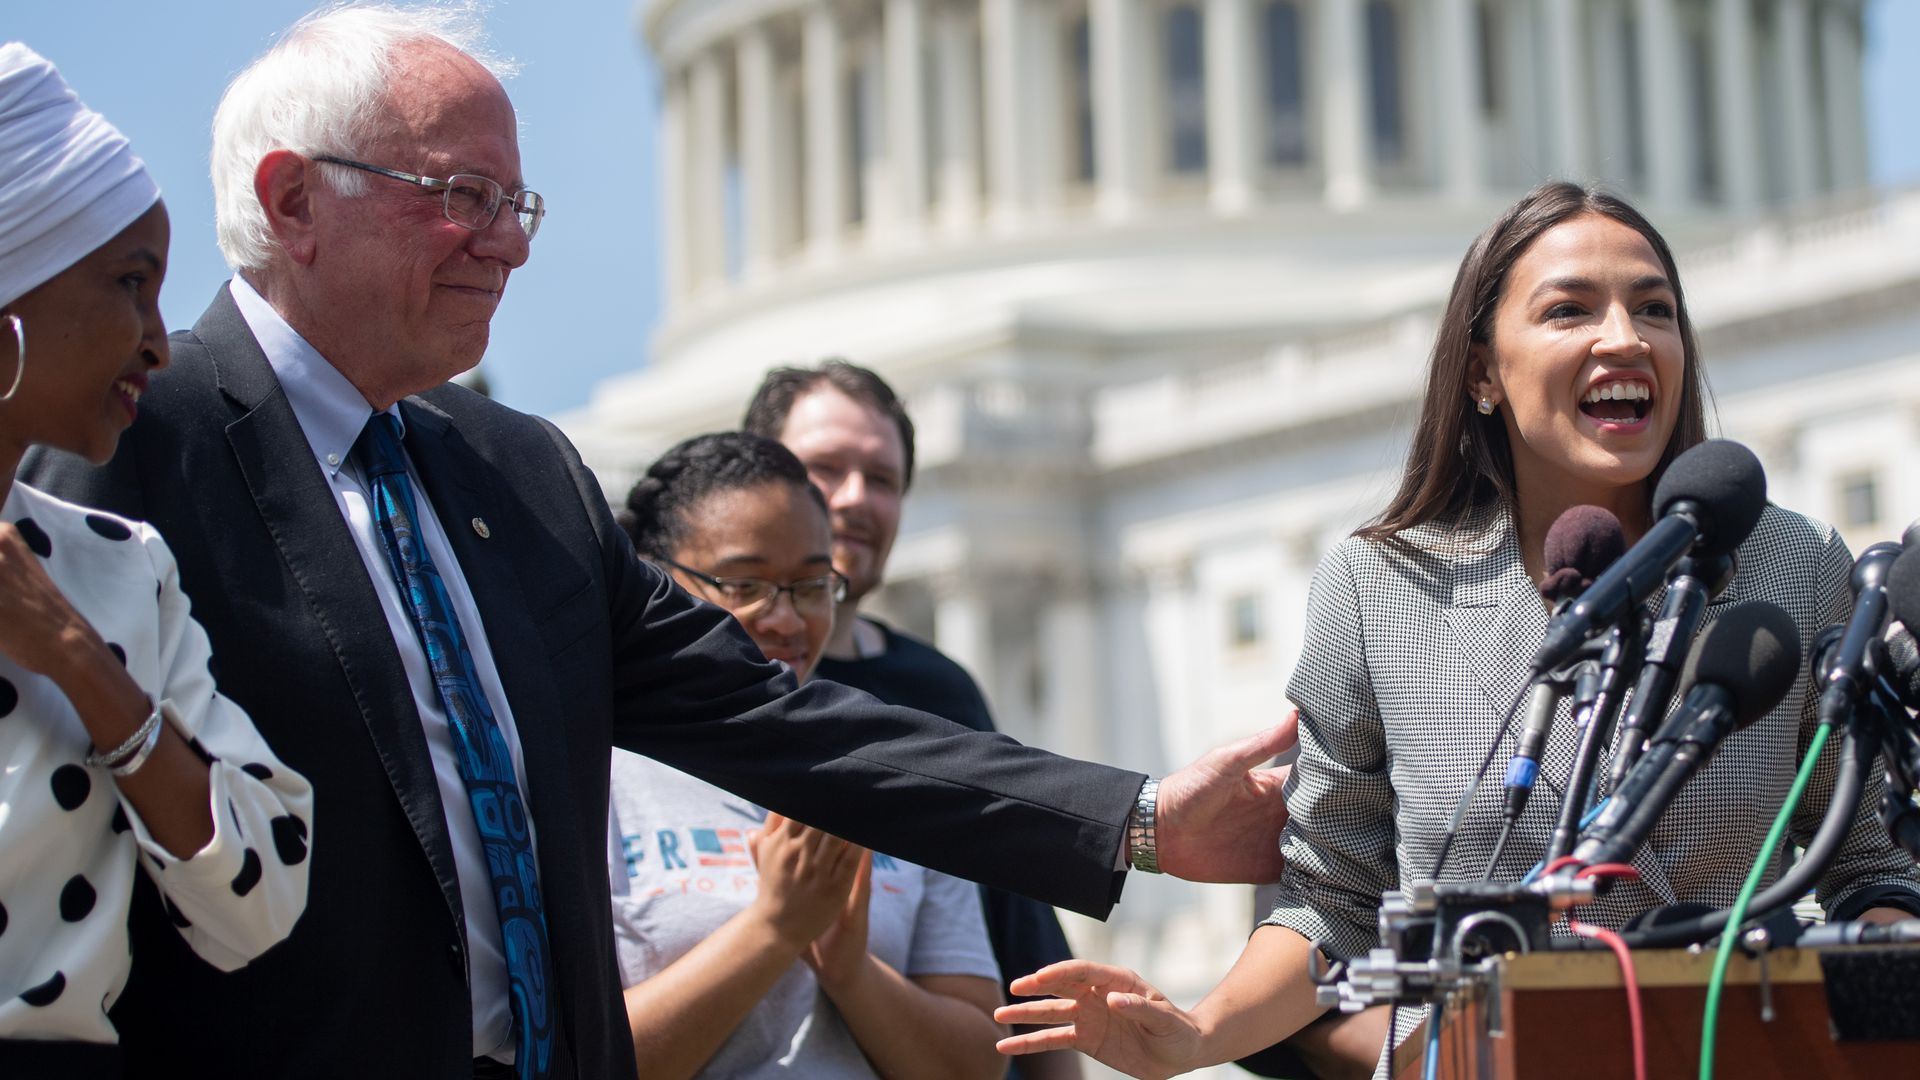 Sen. Bernie Sanders and Rep. Alexandria Ocasio-Cortez during a June press conference in Washington, D.C.